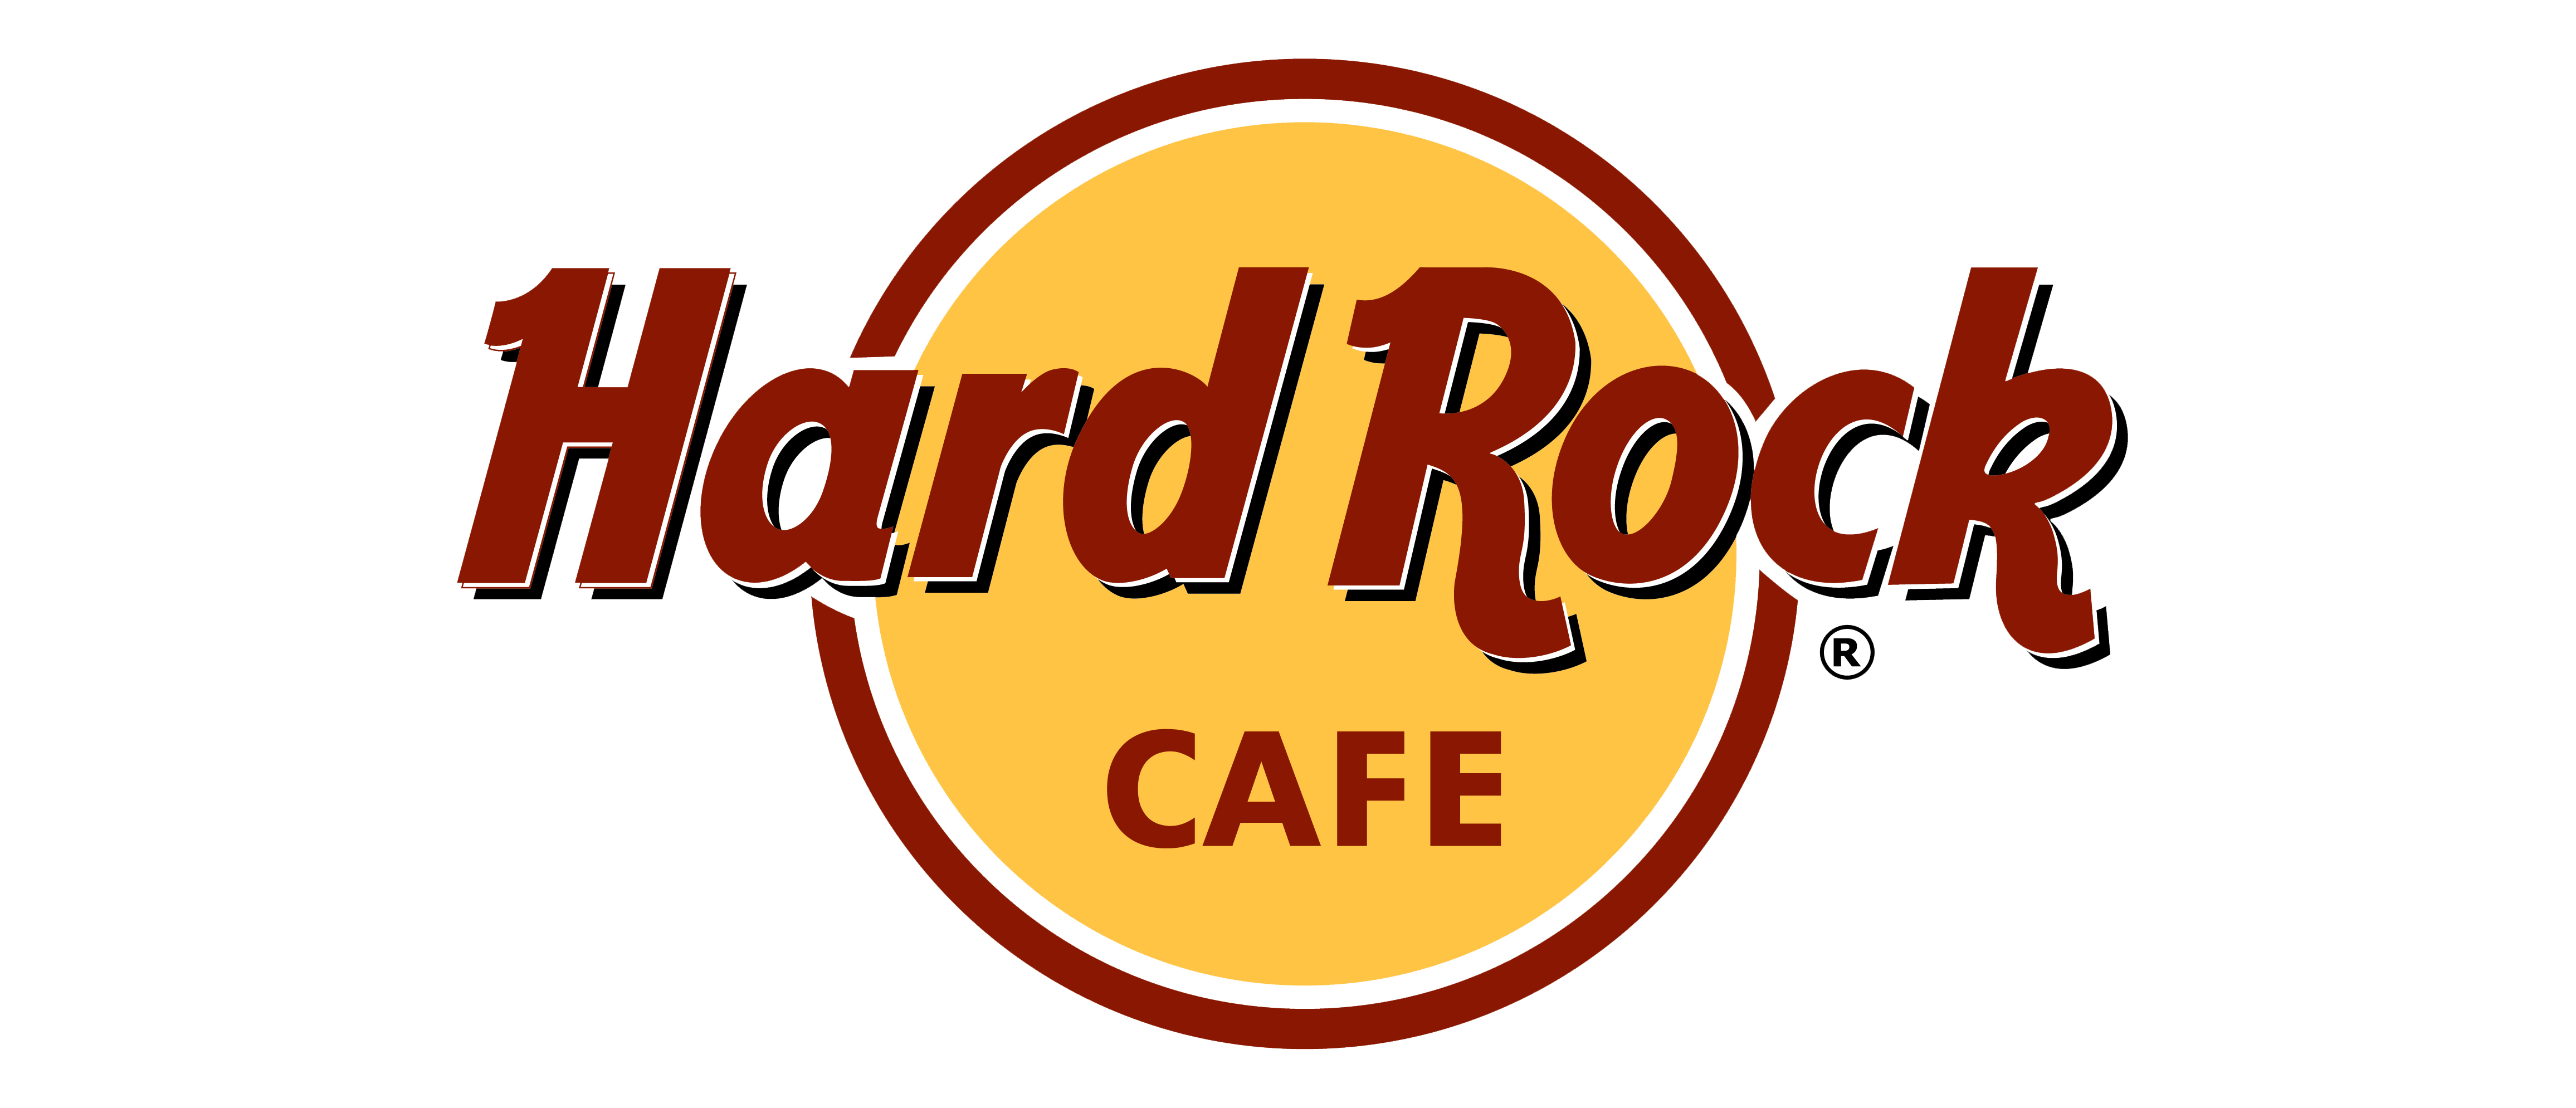 Hard Rock Cafe Italy Locations